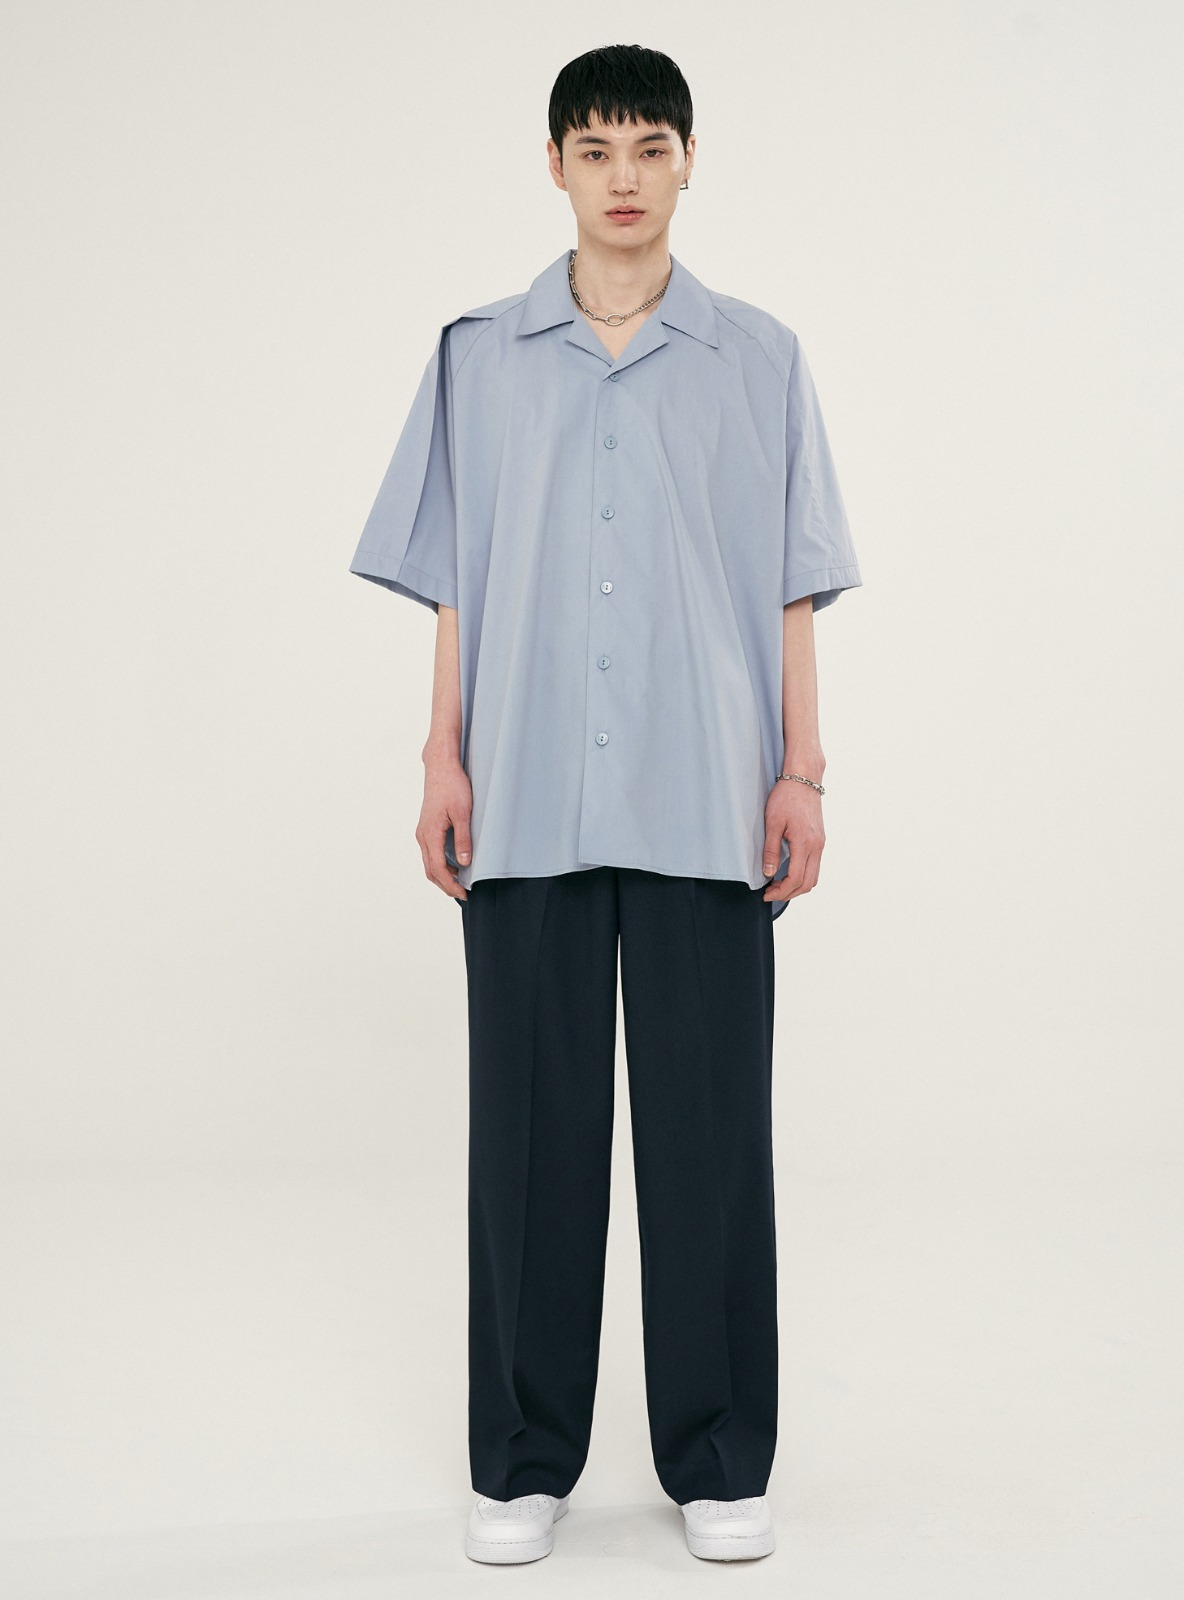 FOLDED AVANTGARDE SHIRT BLUE GREY